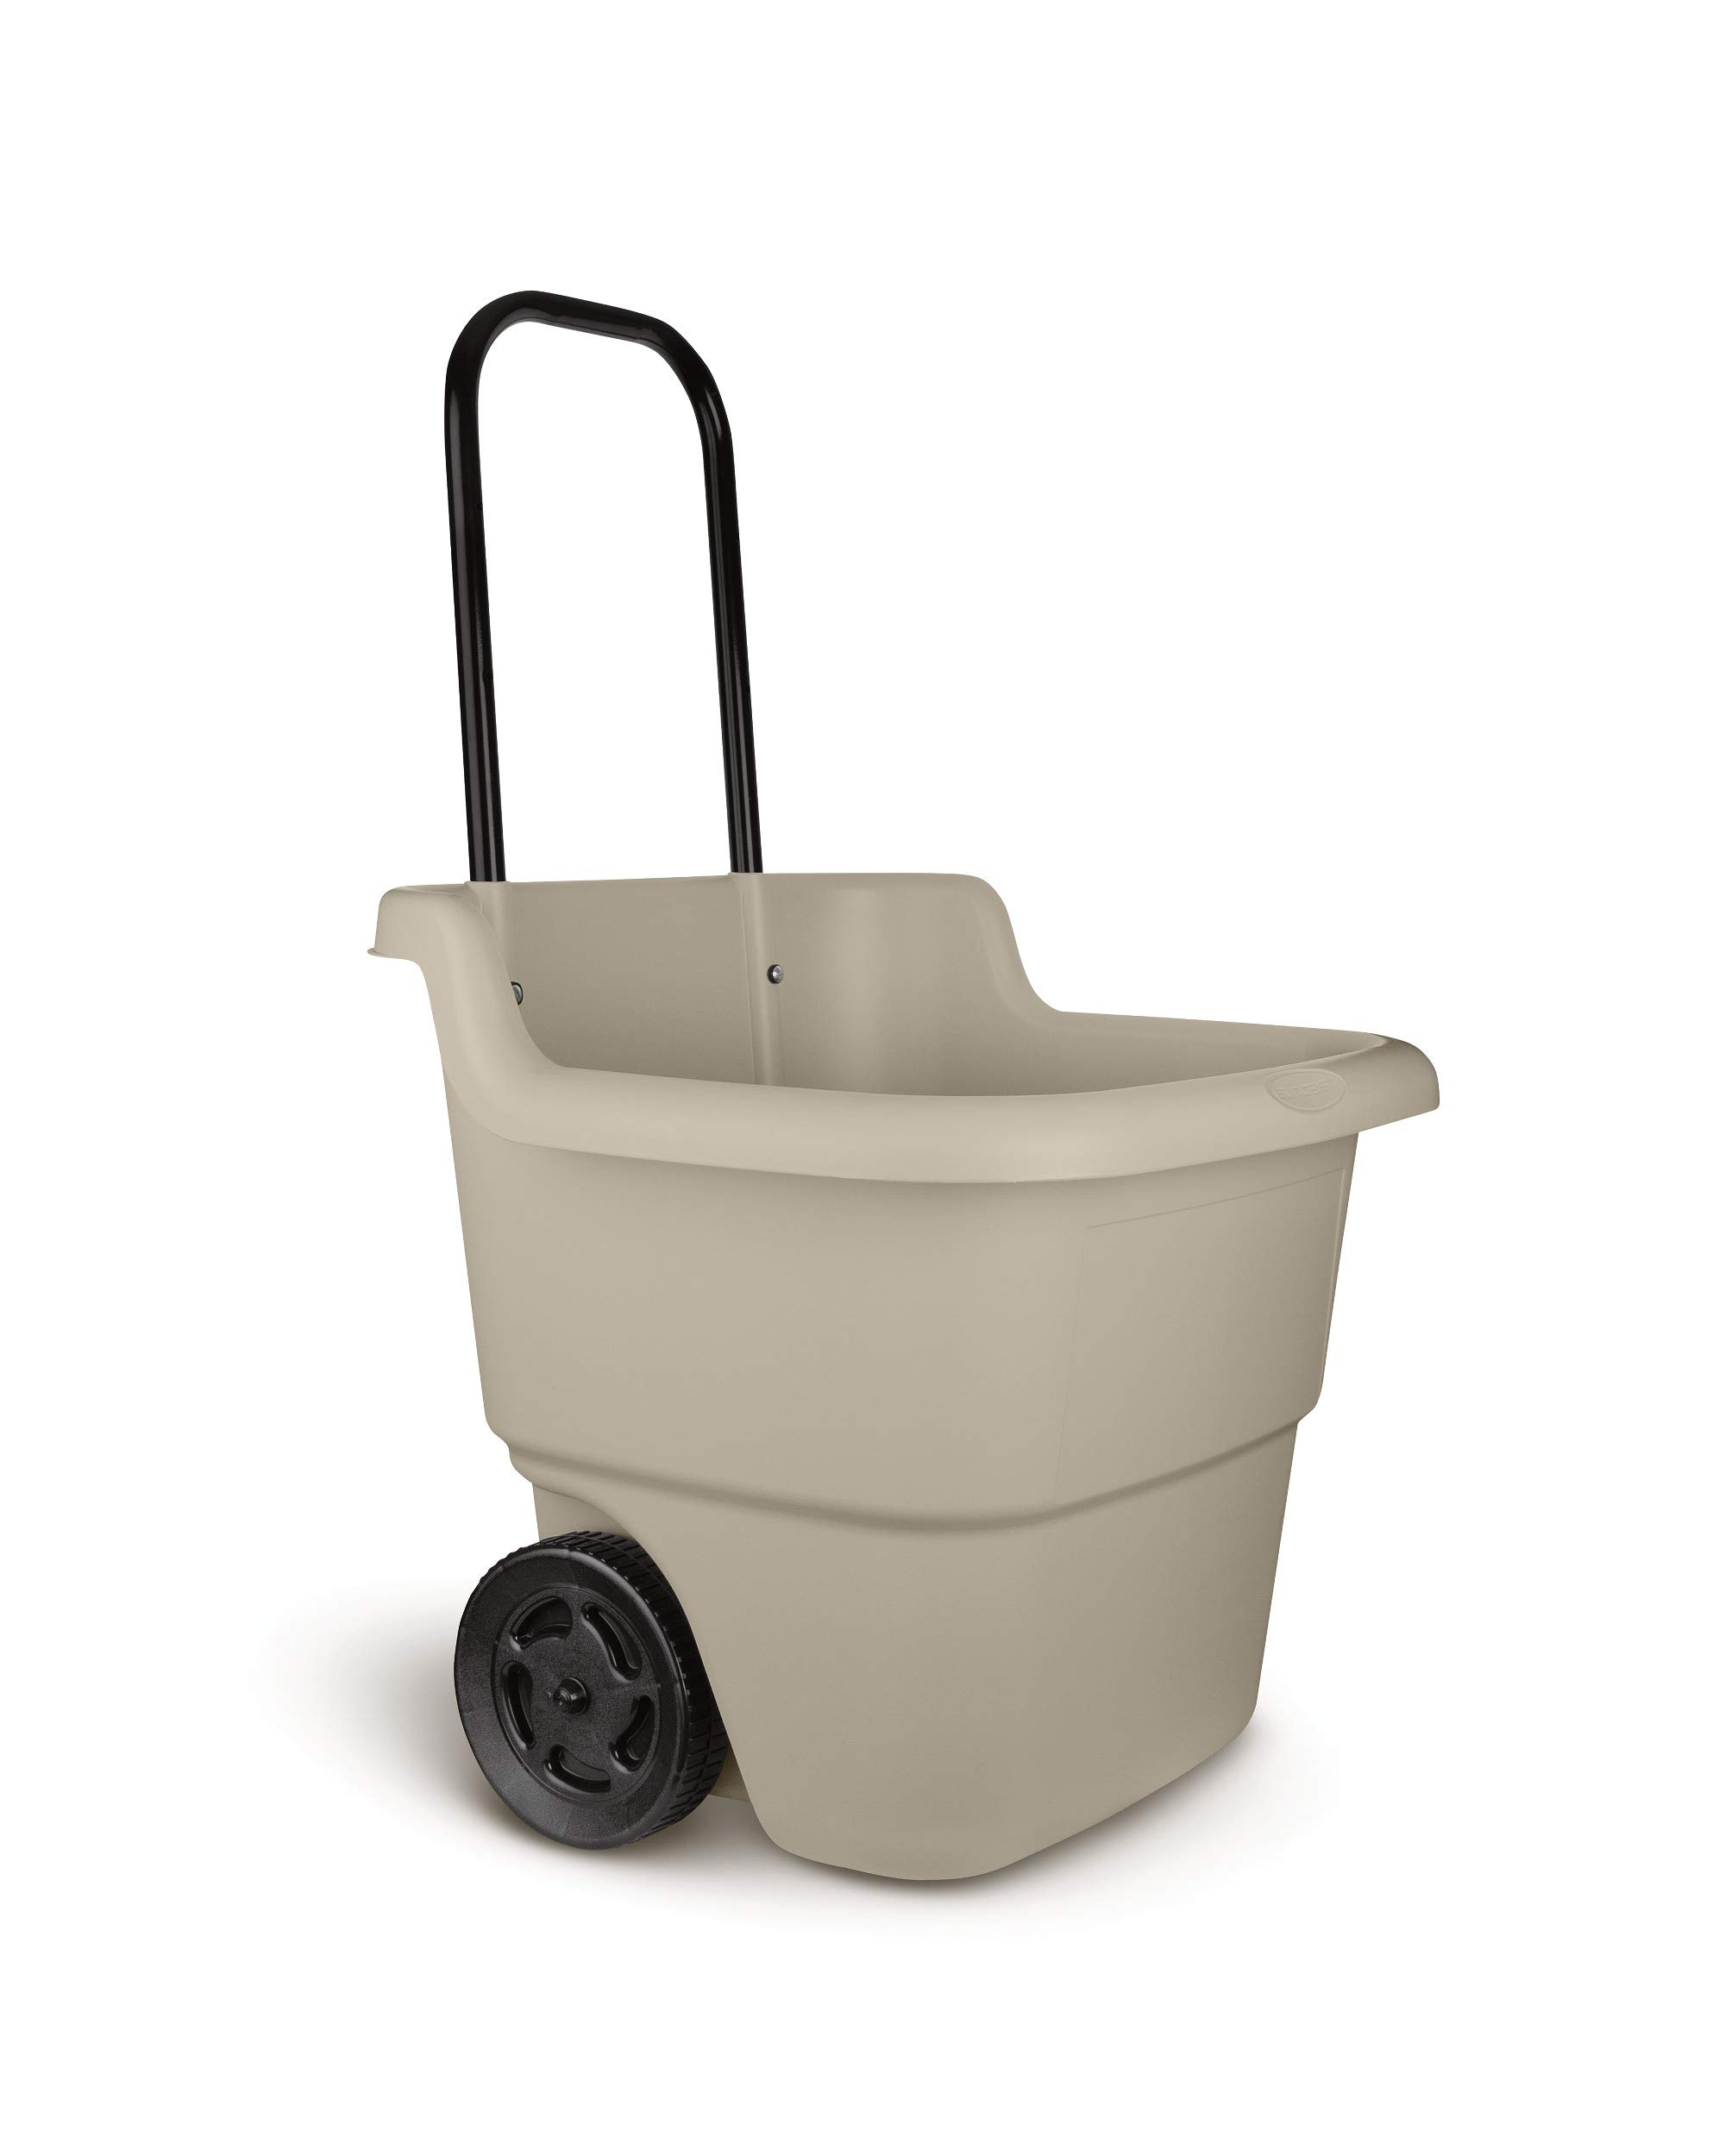 Suncast 2 -Wheel Resin Rolling Lawn Cart with Handle - 15.5 Gallon Garden Cart - Lightweight and Durable Portable Cart - Taupe